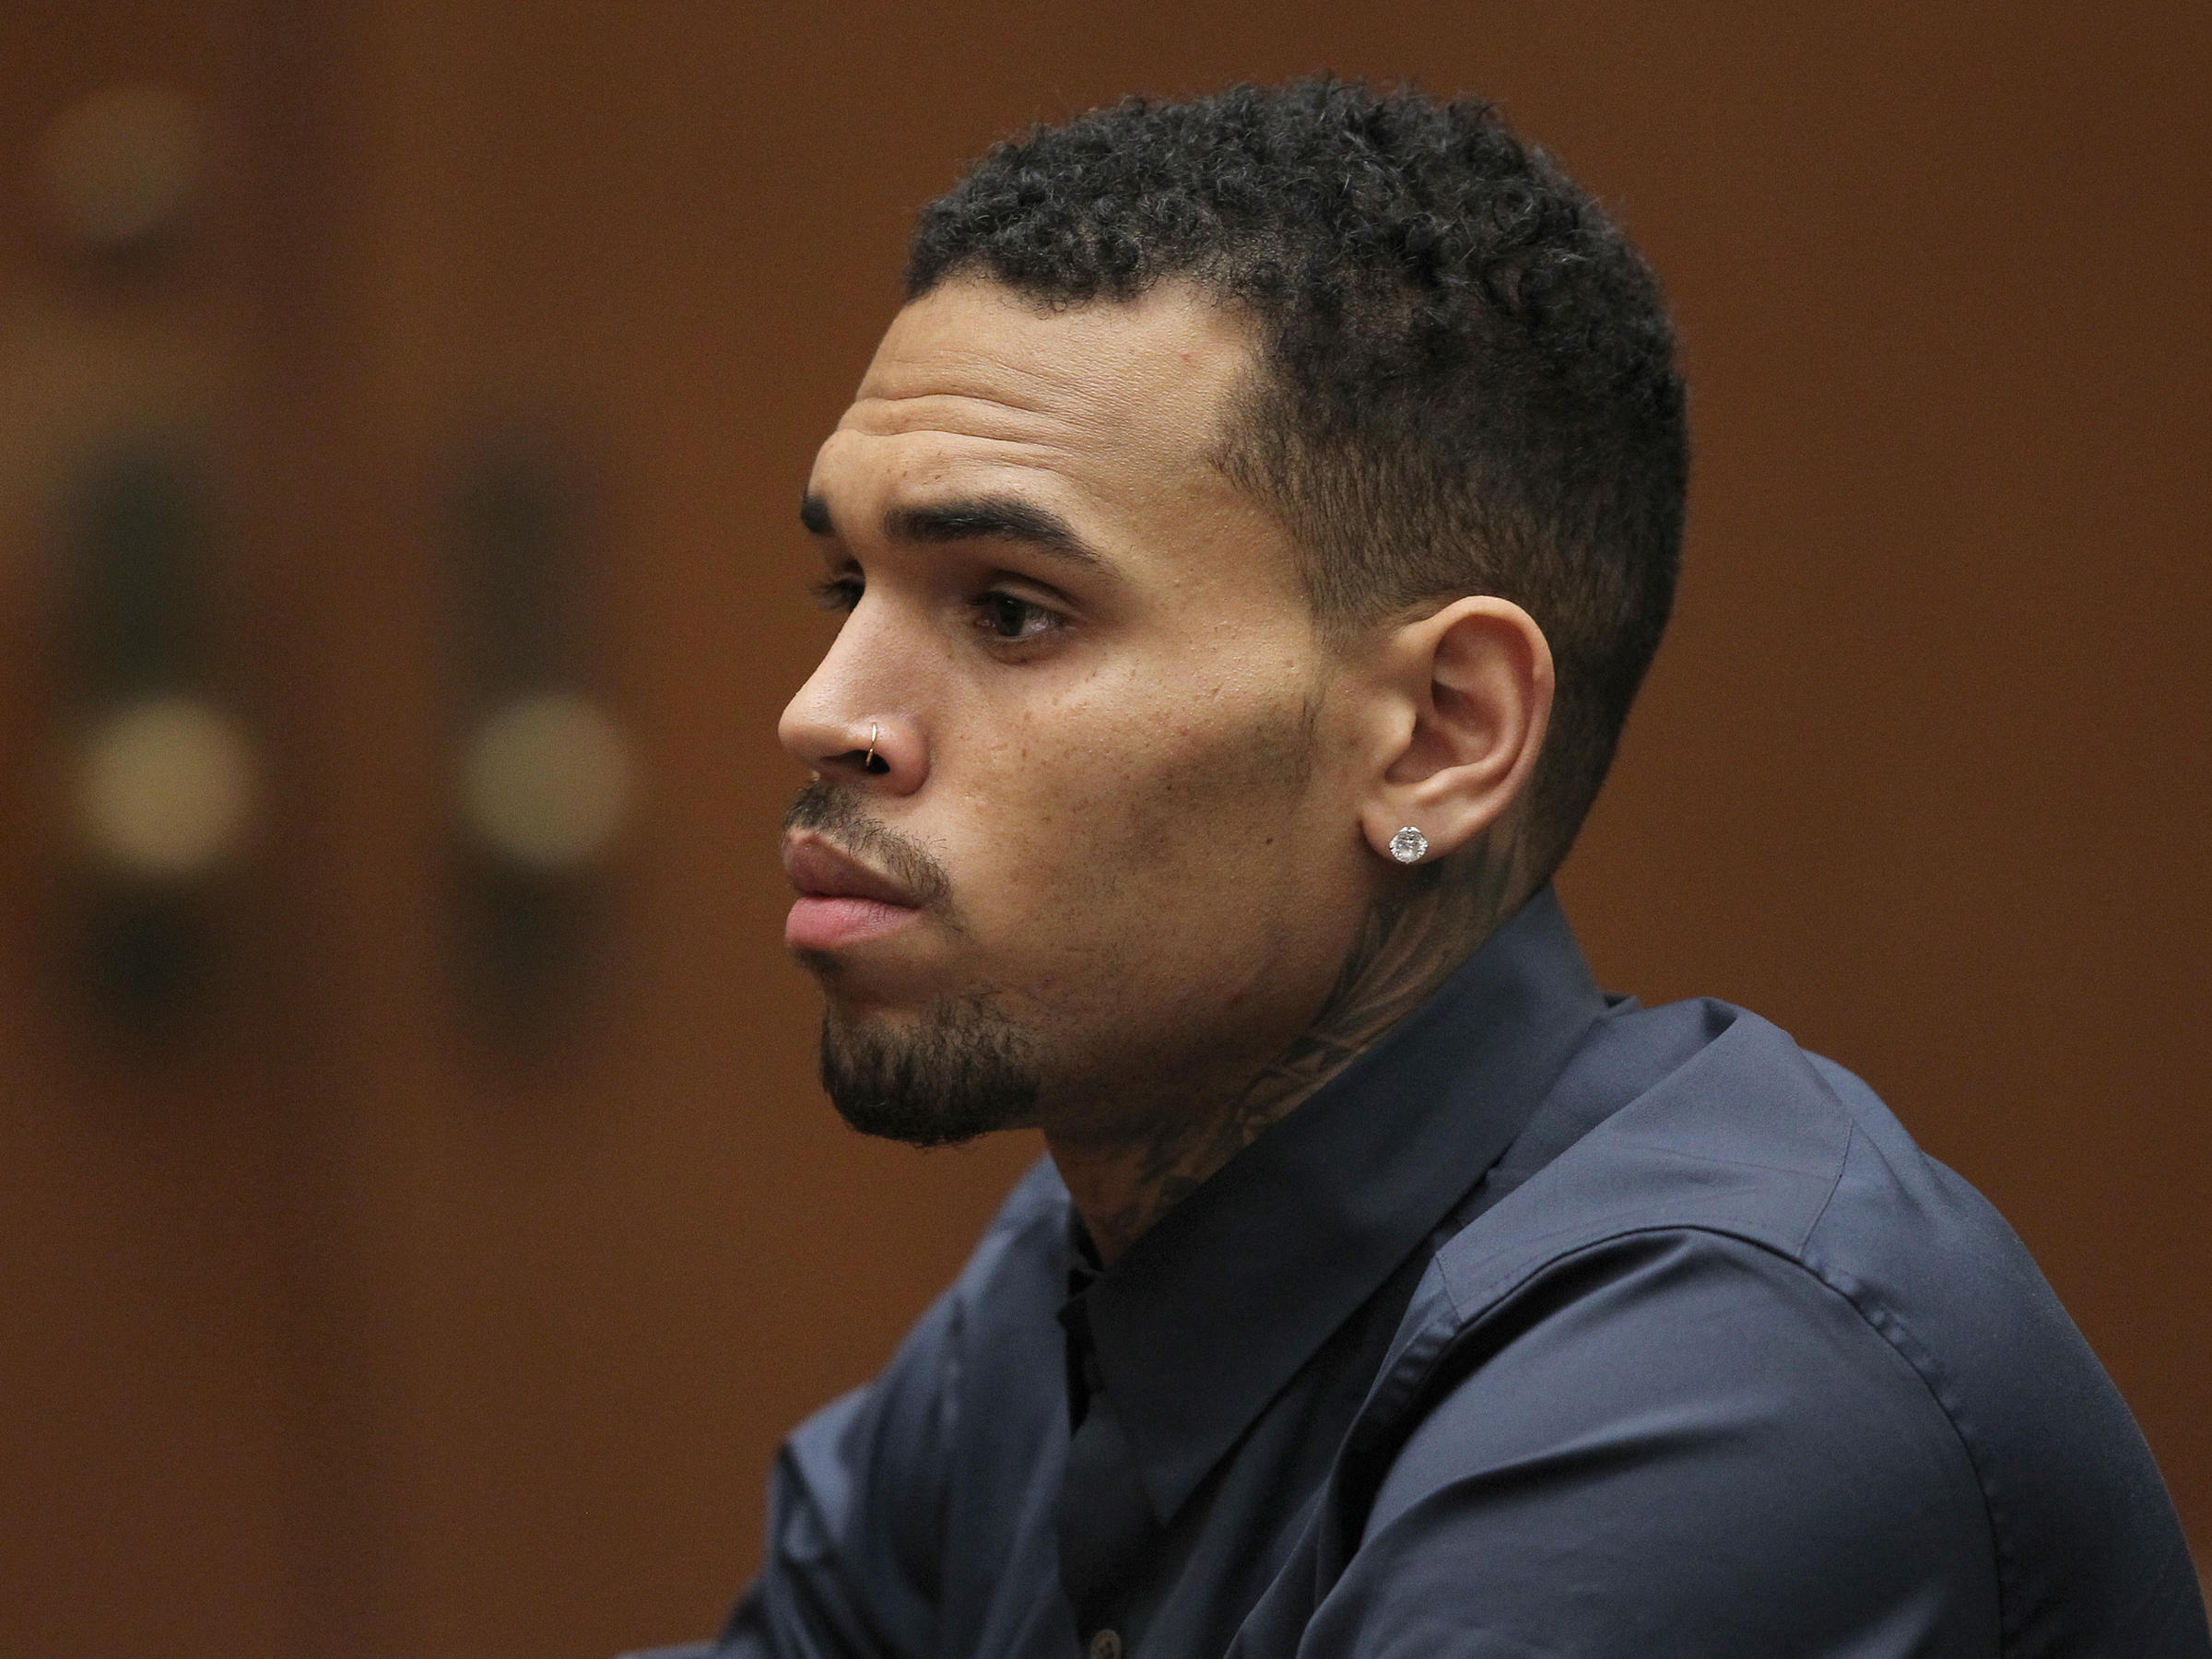 Chris Brown Sued by Woman, Claims She Was Raped at His House